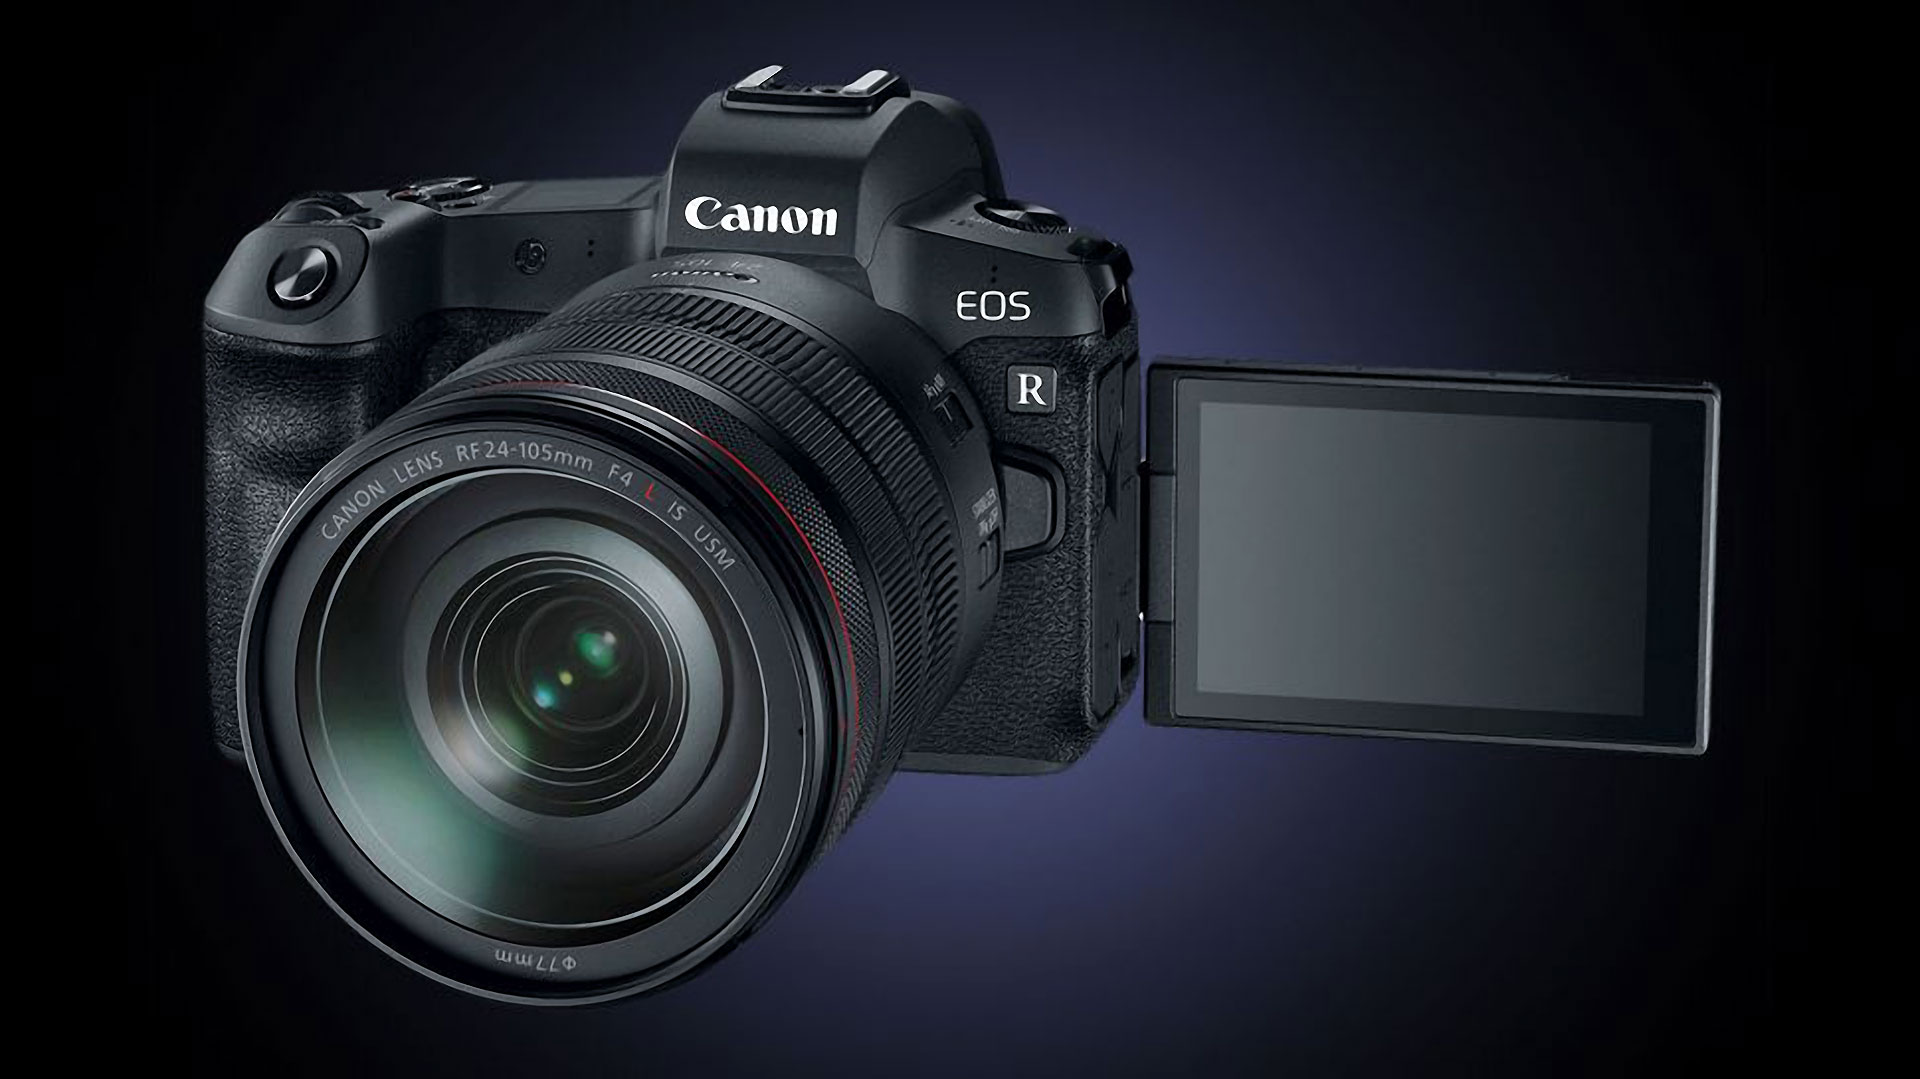 20 things you need to know about the Canon EOS R